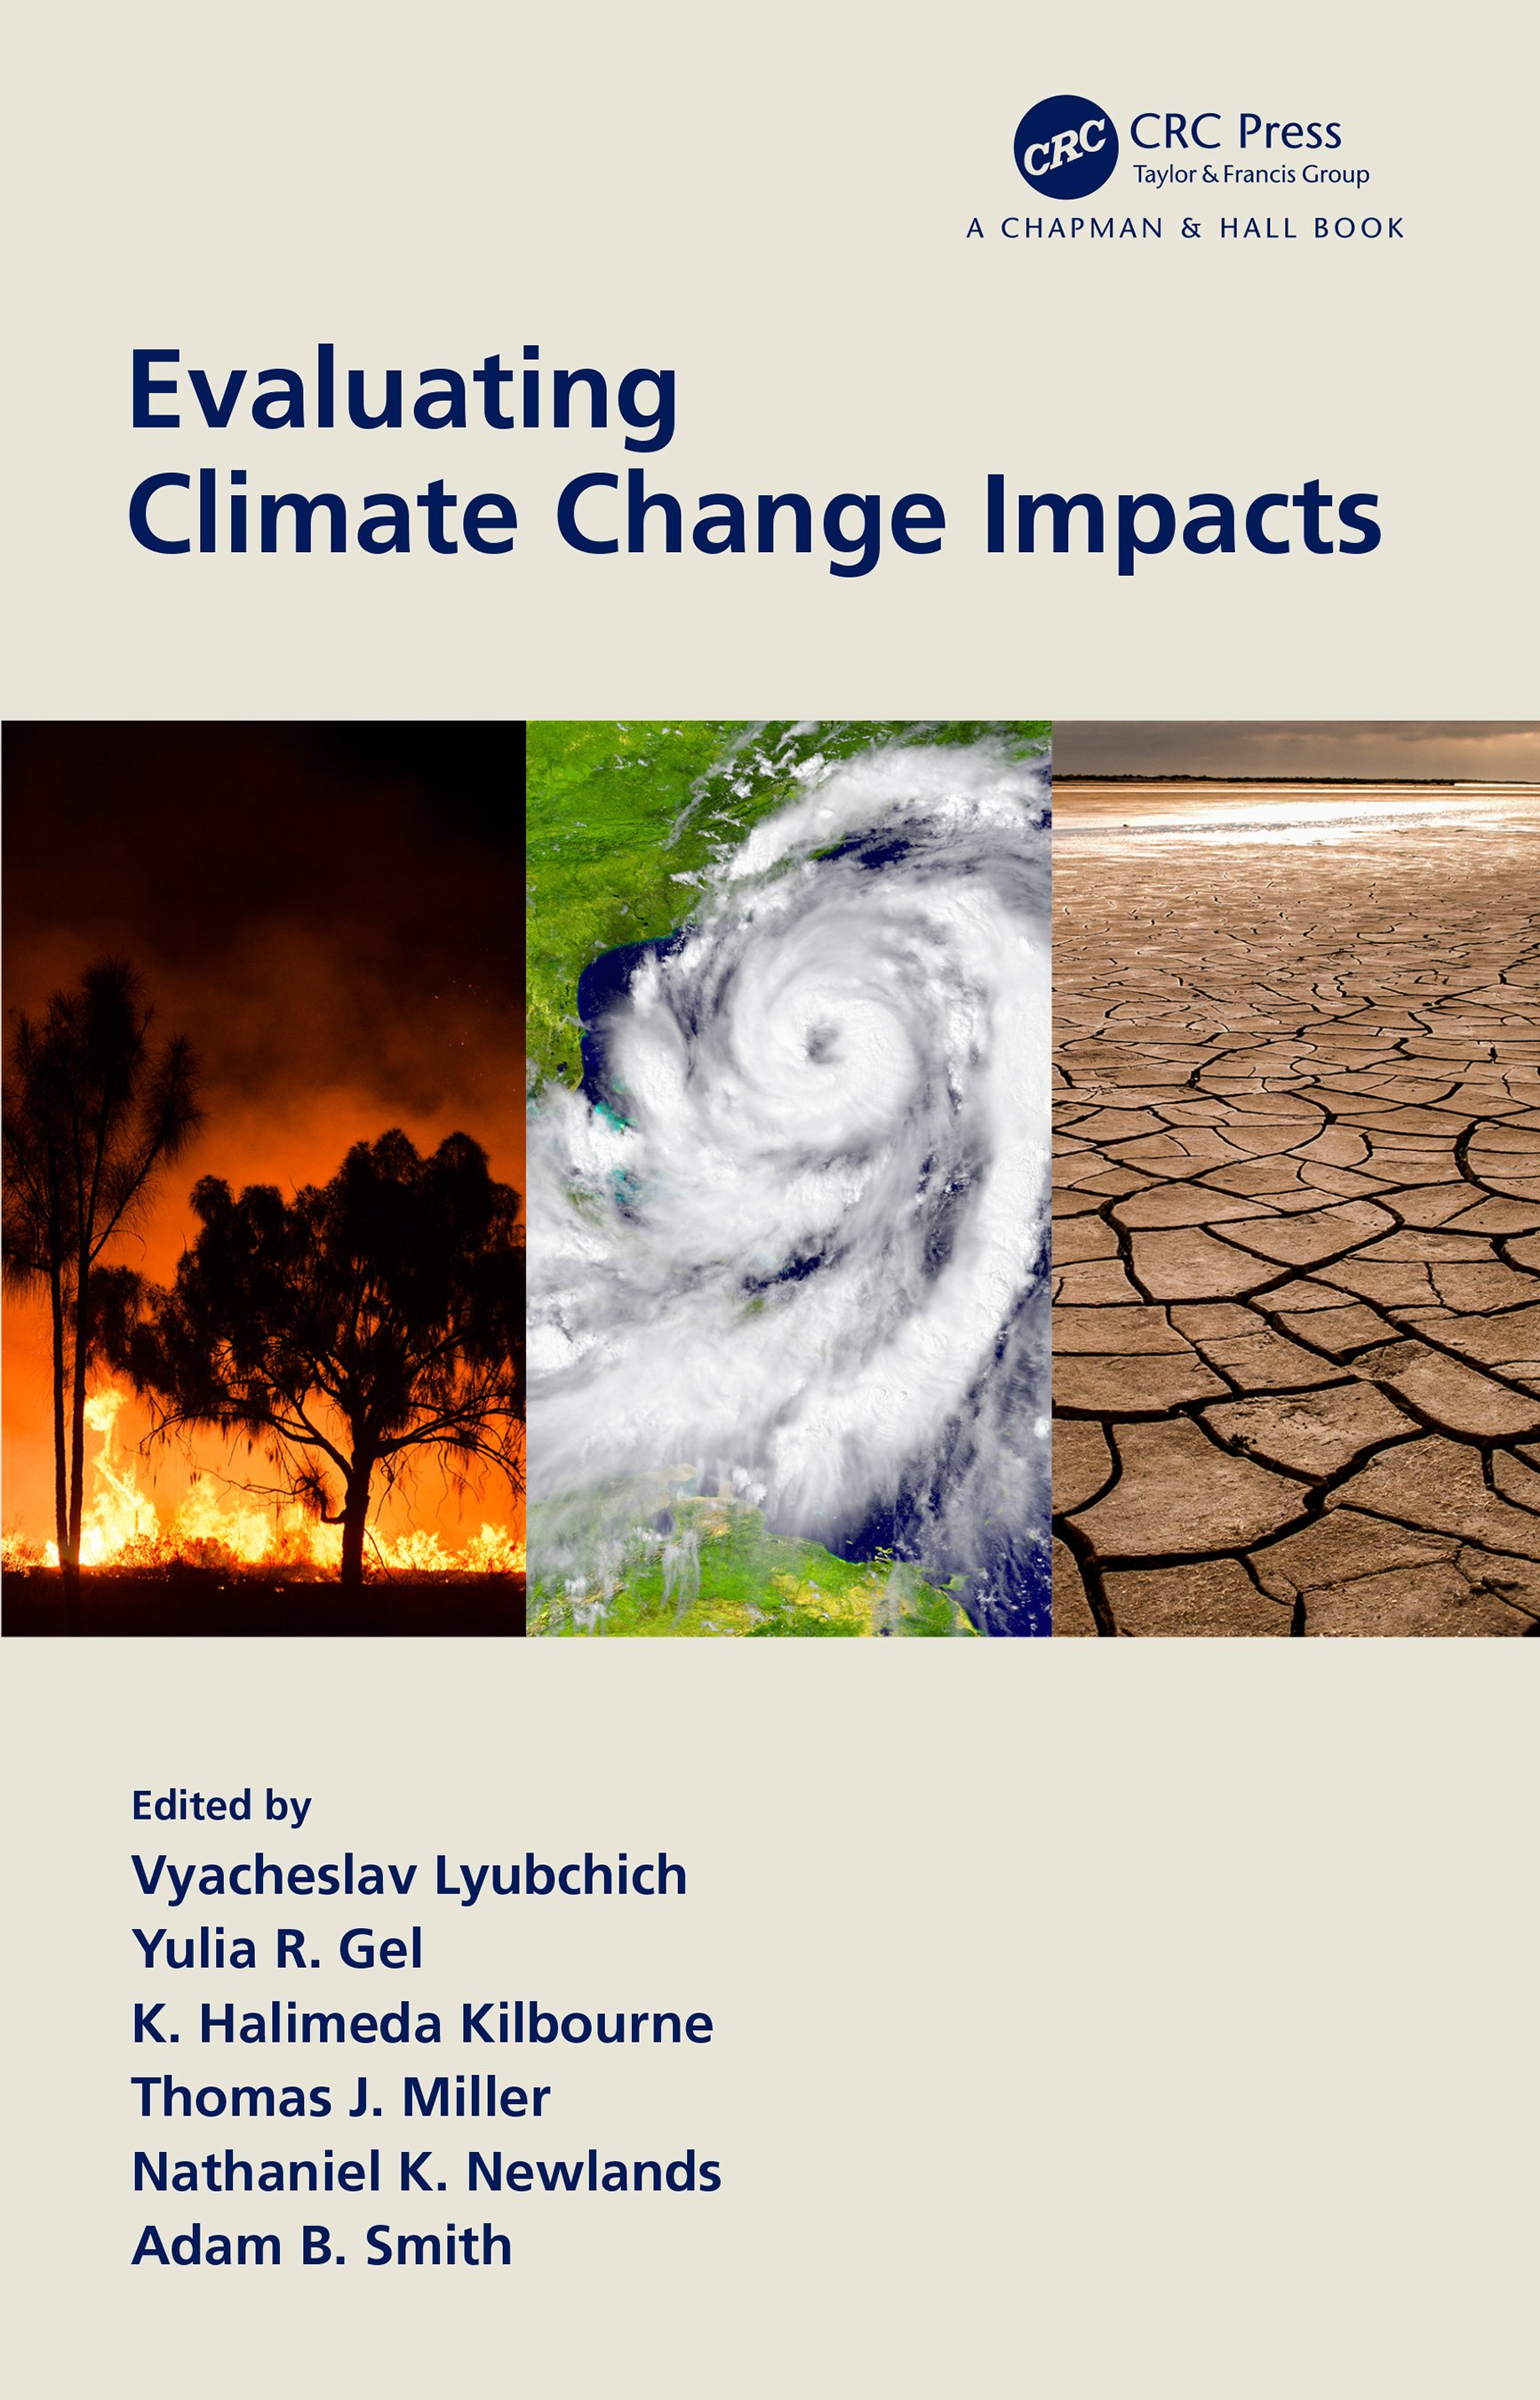 Evaluating Climate Change Impacts